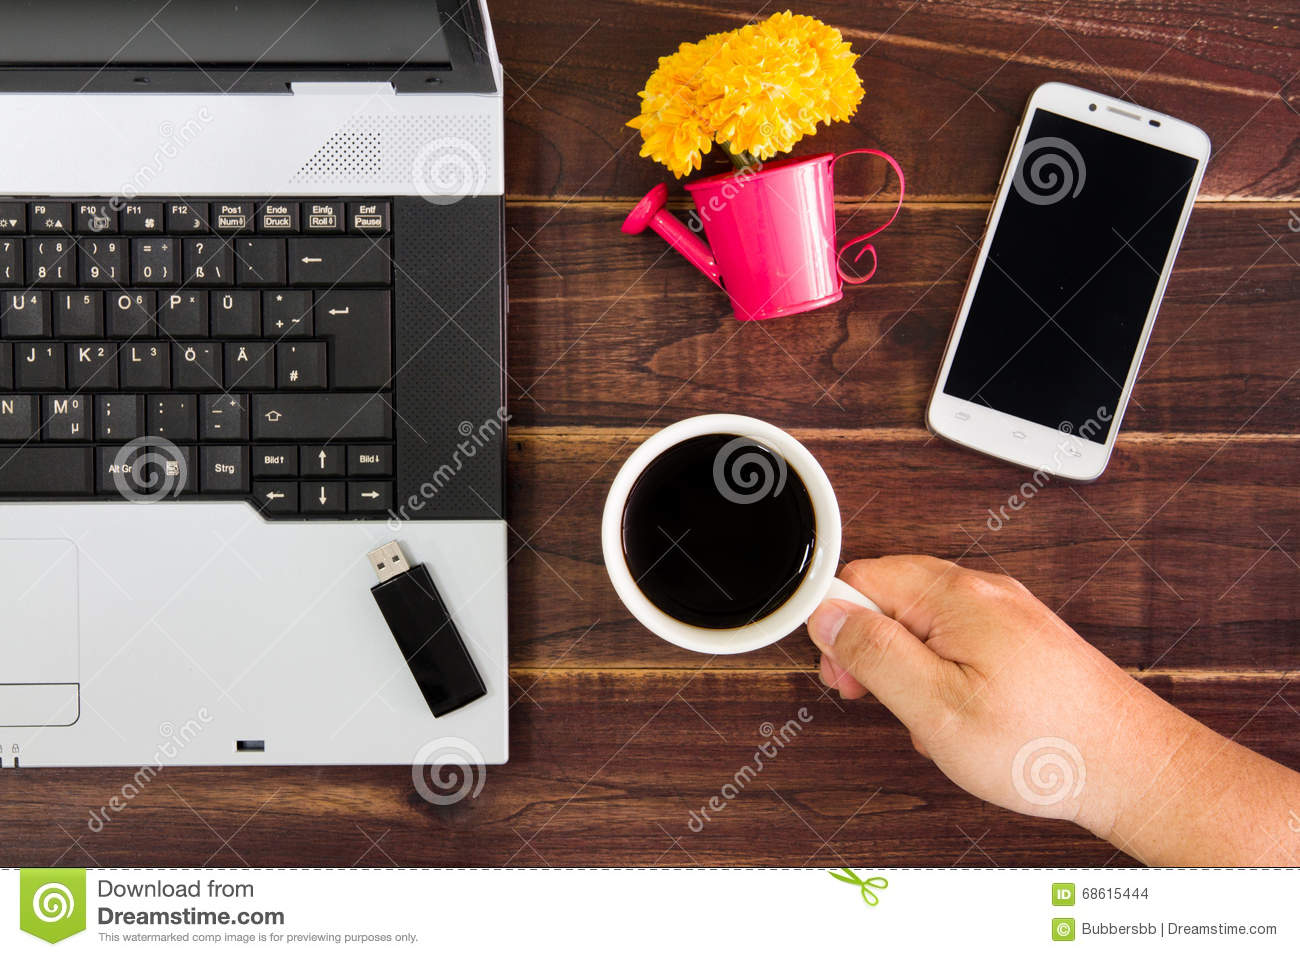 Notebook computer on the desk.USB flash drive stick,coffee cup,smartphone